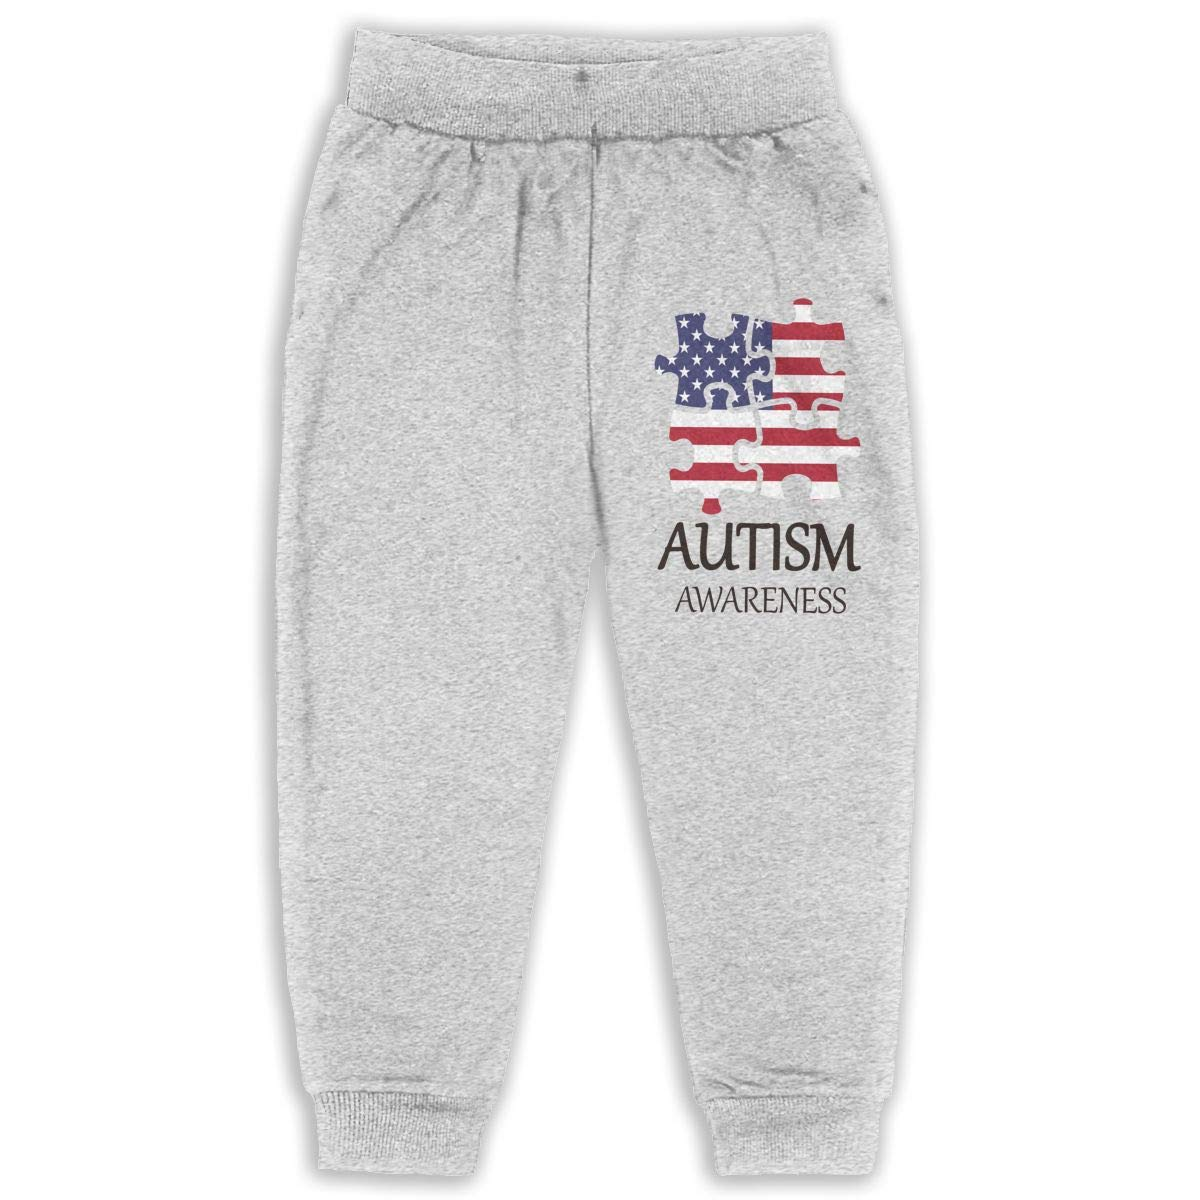 Udyi/&Jln-97 American Flag World Autism Awareness Day 2 Kids /& Toddler Sweatpants Soft Cozy Girls Boys Jersey Pant